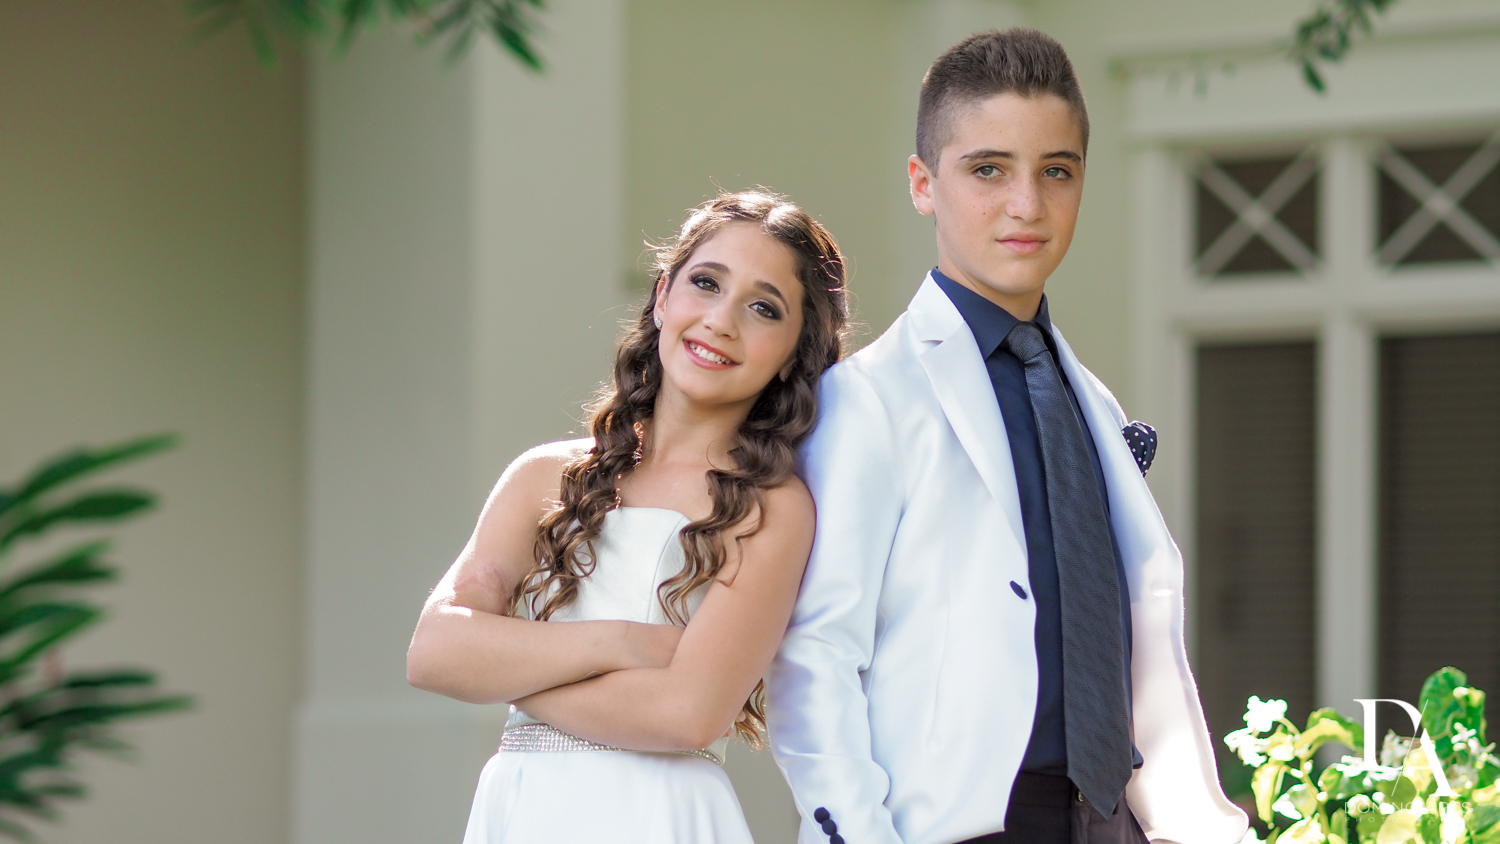 kids portrait at Luxury B'Nai Mitzvah at Woodfield Country Club by Domino Arts Photography